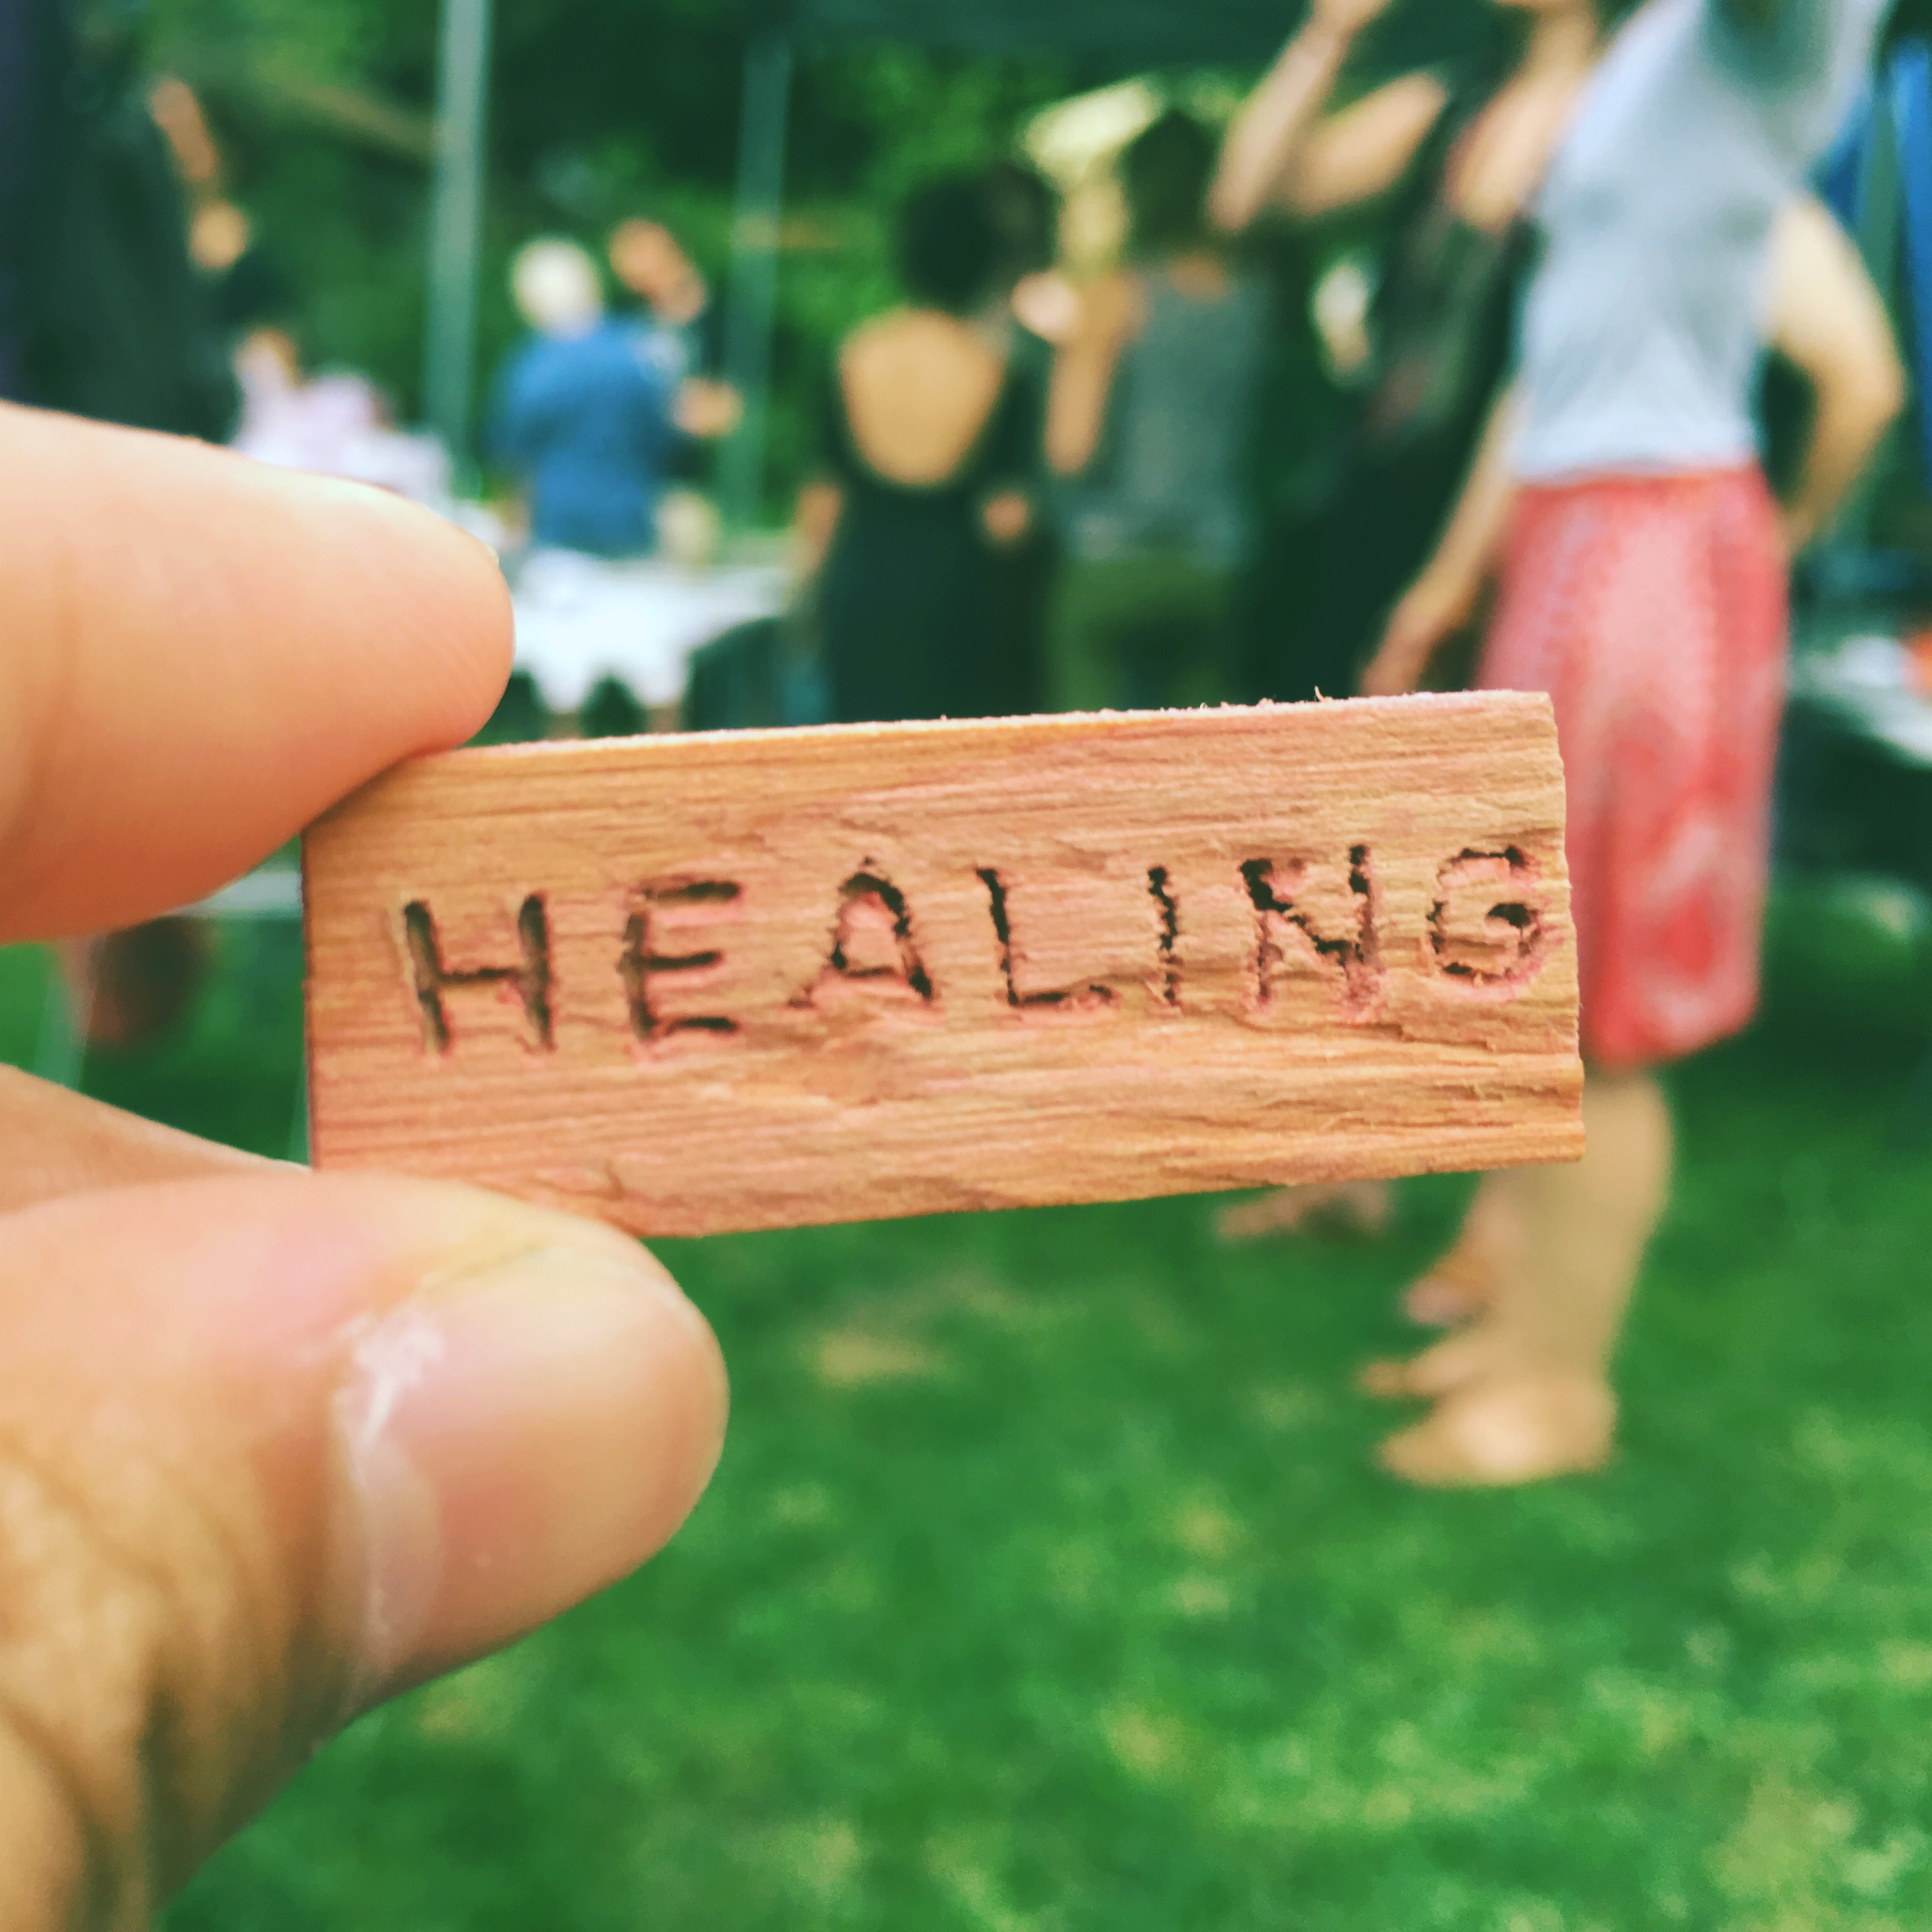 """A hand holds a small, wooden block with the word """"healing"""" carved into it. The out-of-focus background features people talking outside in a greenspace."""